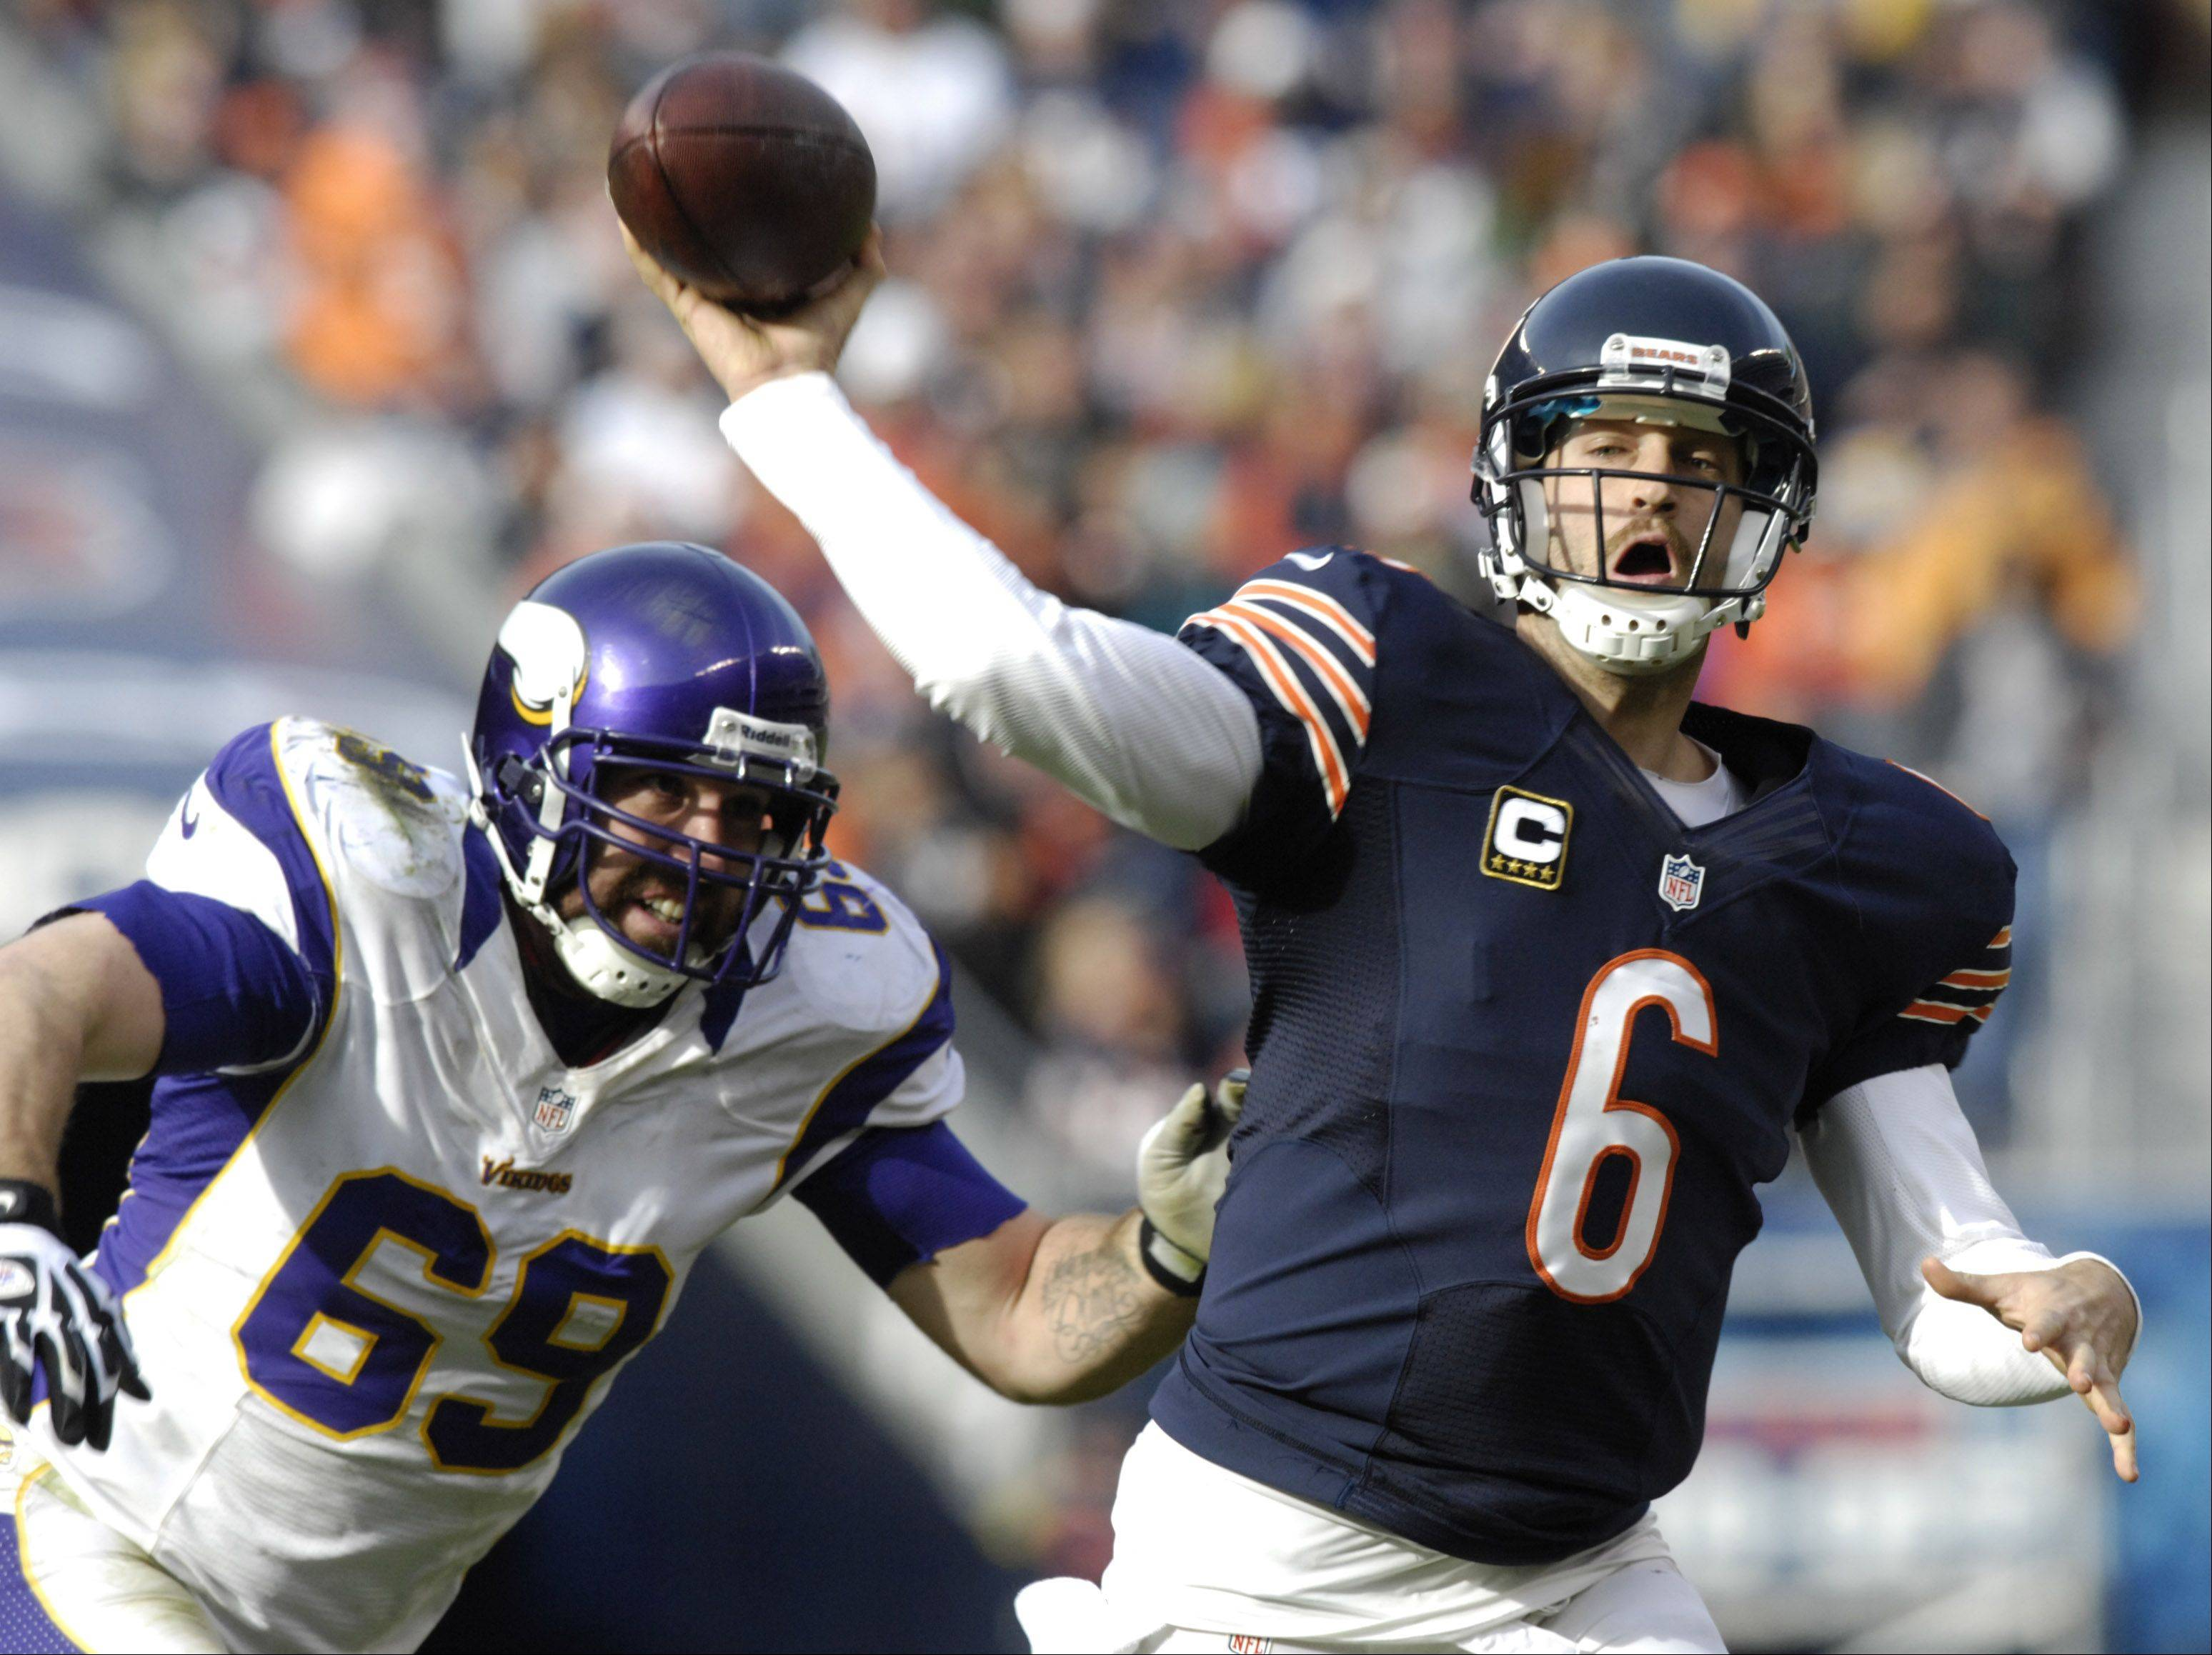 JOE LEWNARD/jlewnard@dailyherald.com � Chicago Bears quarterback Jay Cutler throws a second-quarter touchdown pass to tight end Matt Spaeth while being pursued by Minnesota Vikings defensive tackle Jared Allen at Soldier Field Sunday.